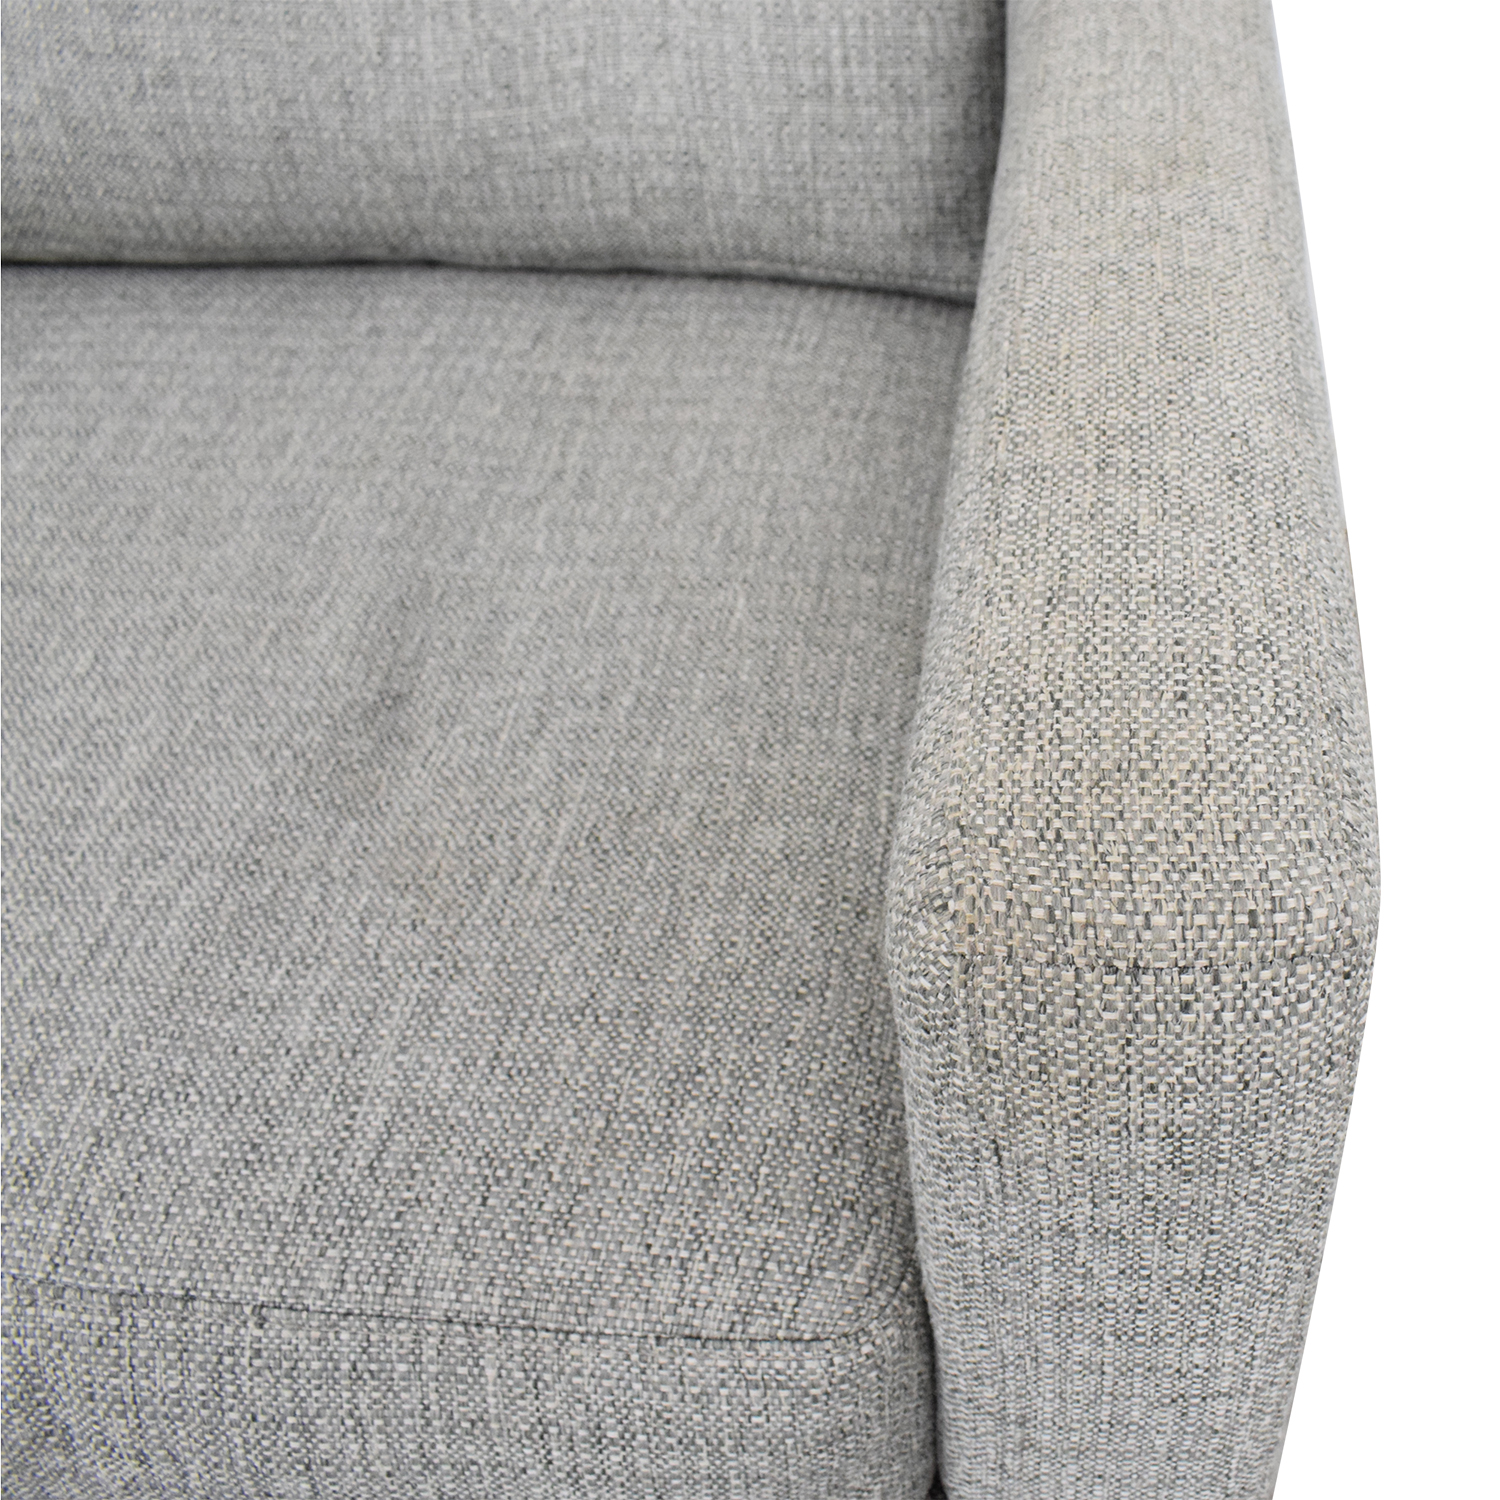 Raymour & Flanigan Raymour & Flanigan Accent Chair nj